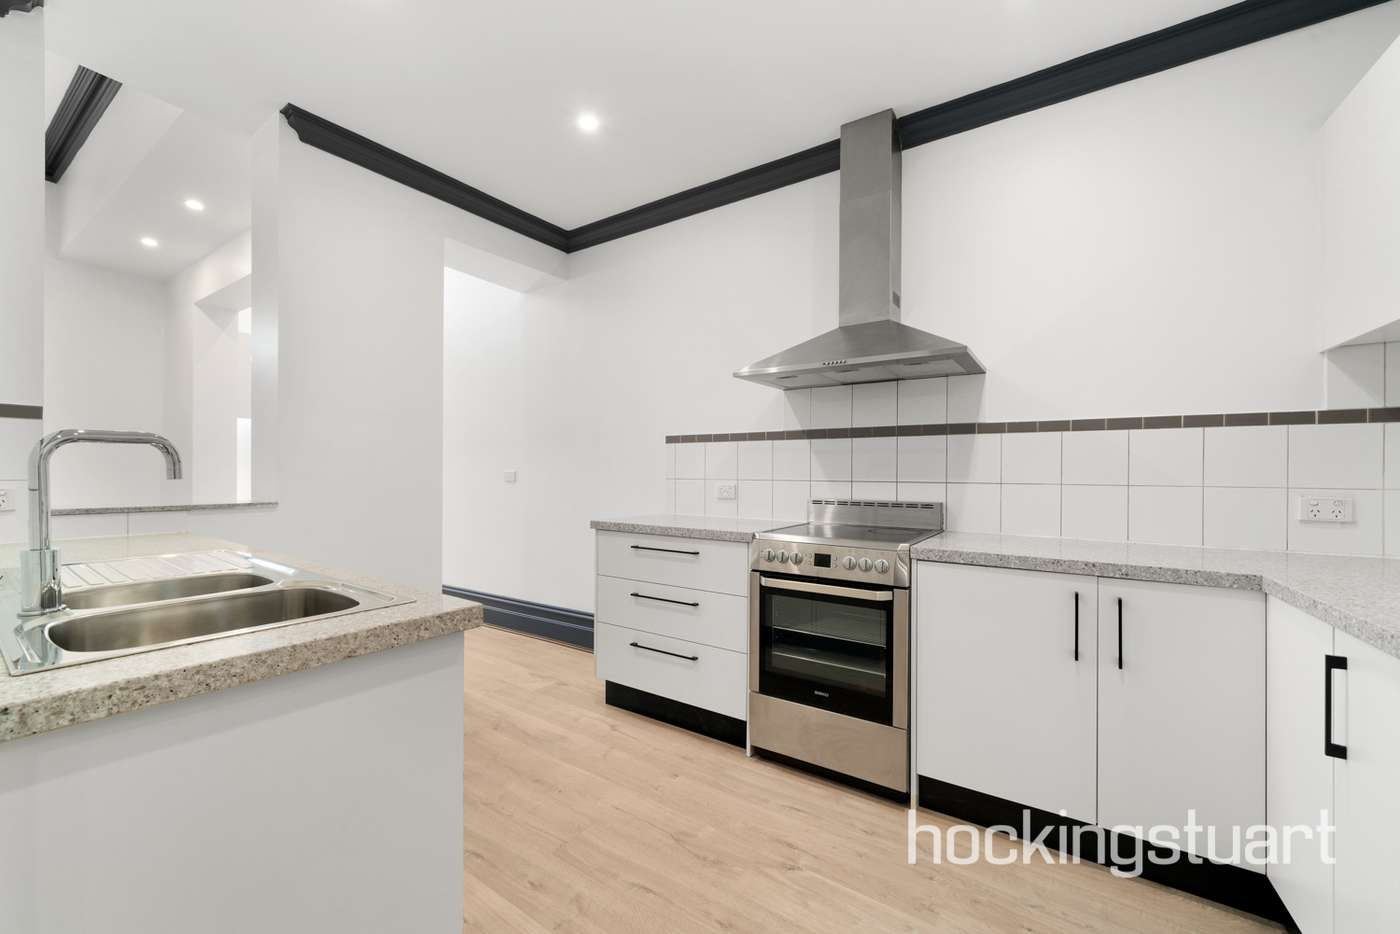 Main view of Homely house listing, 16 Arden Street, North Melbourne VIC 3051